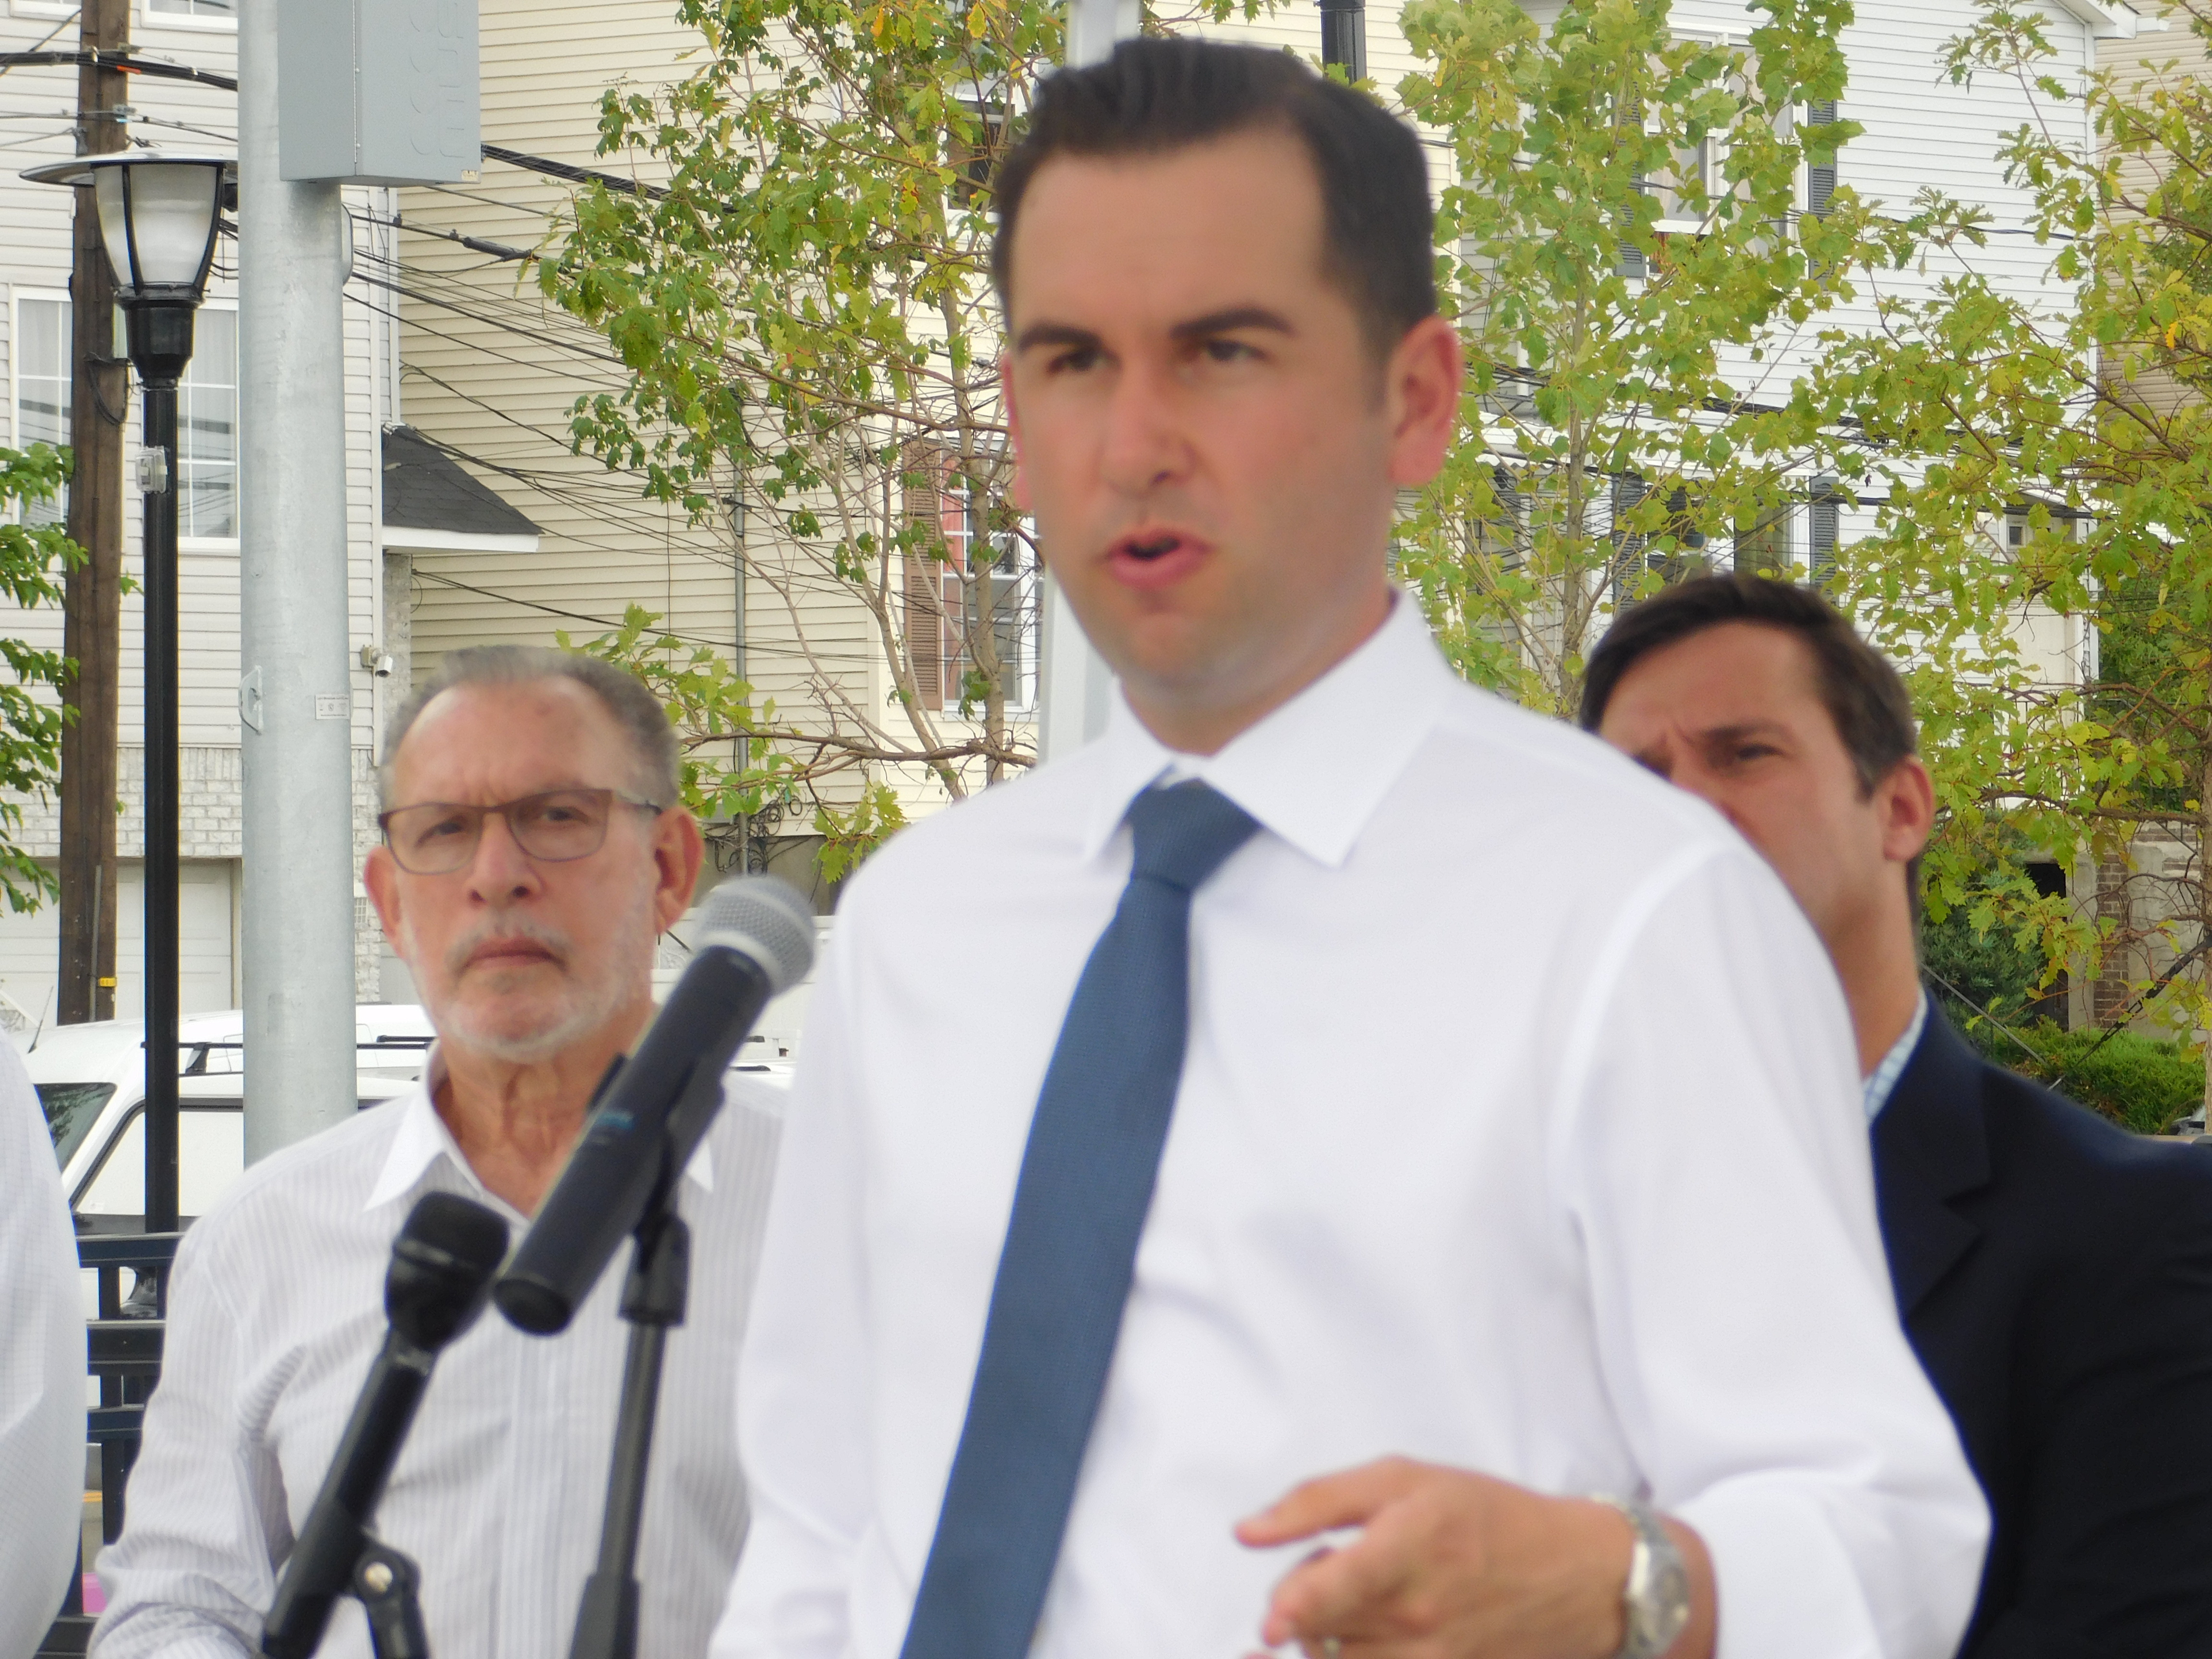 Fulop held a press conference on open space in Jersey City's new Berry Lane Park.